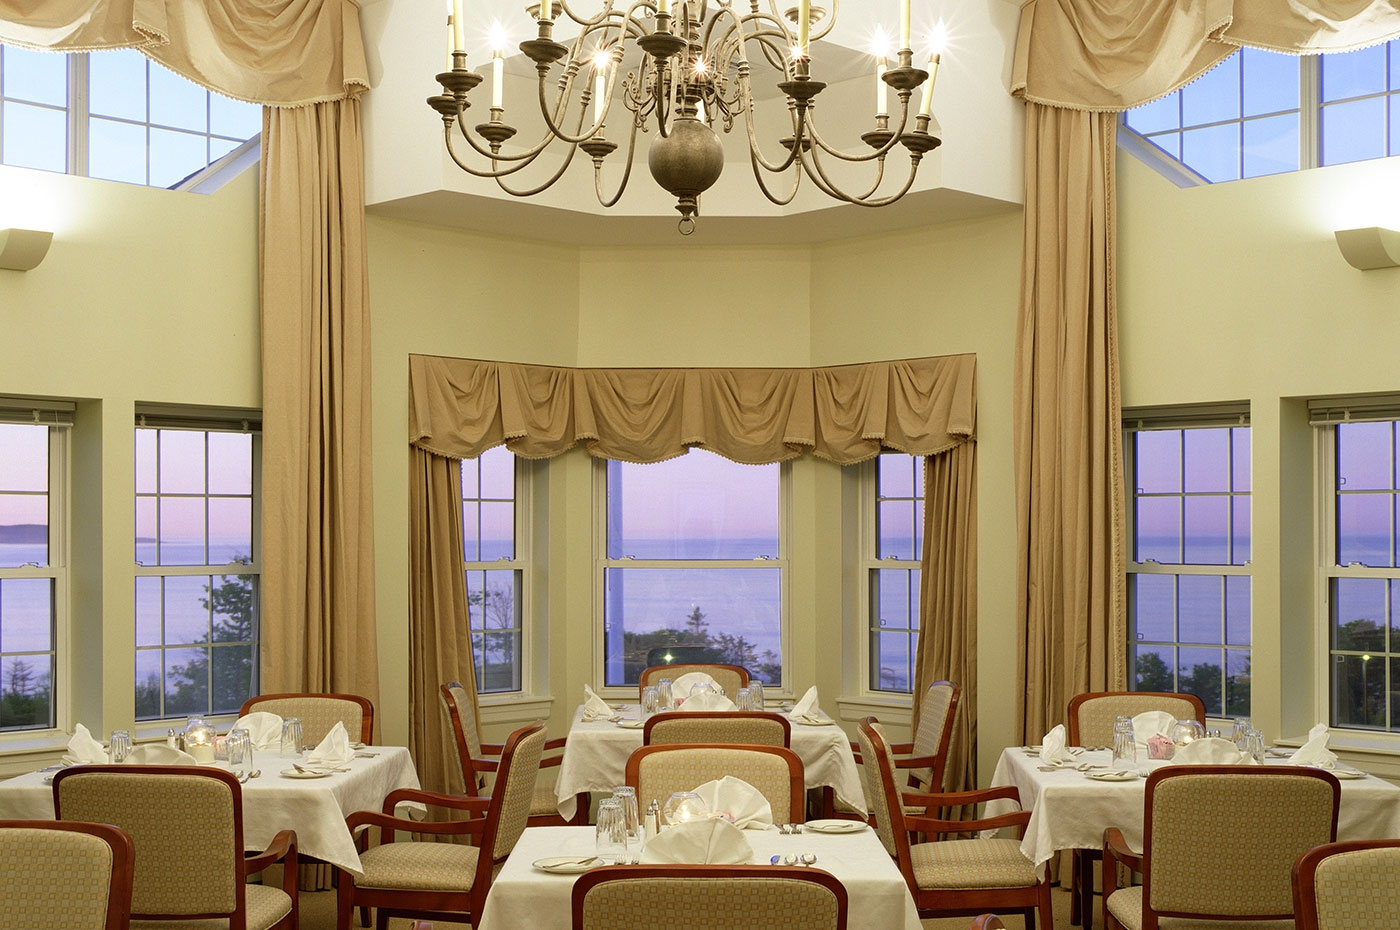 Formal dining design for lifecare retirement community in Maine